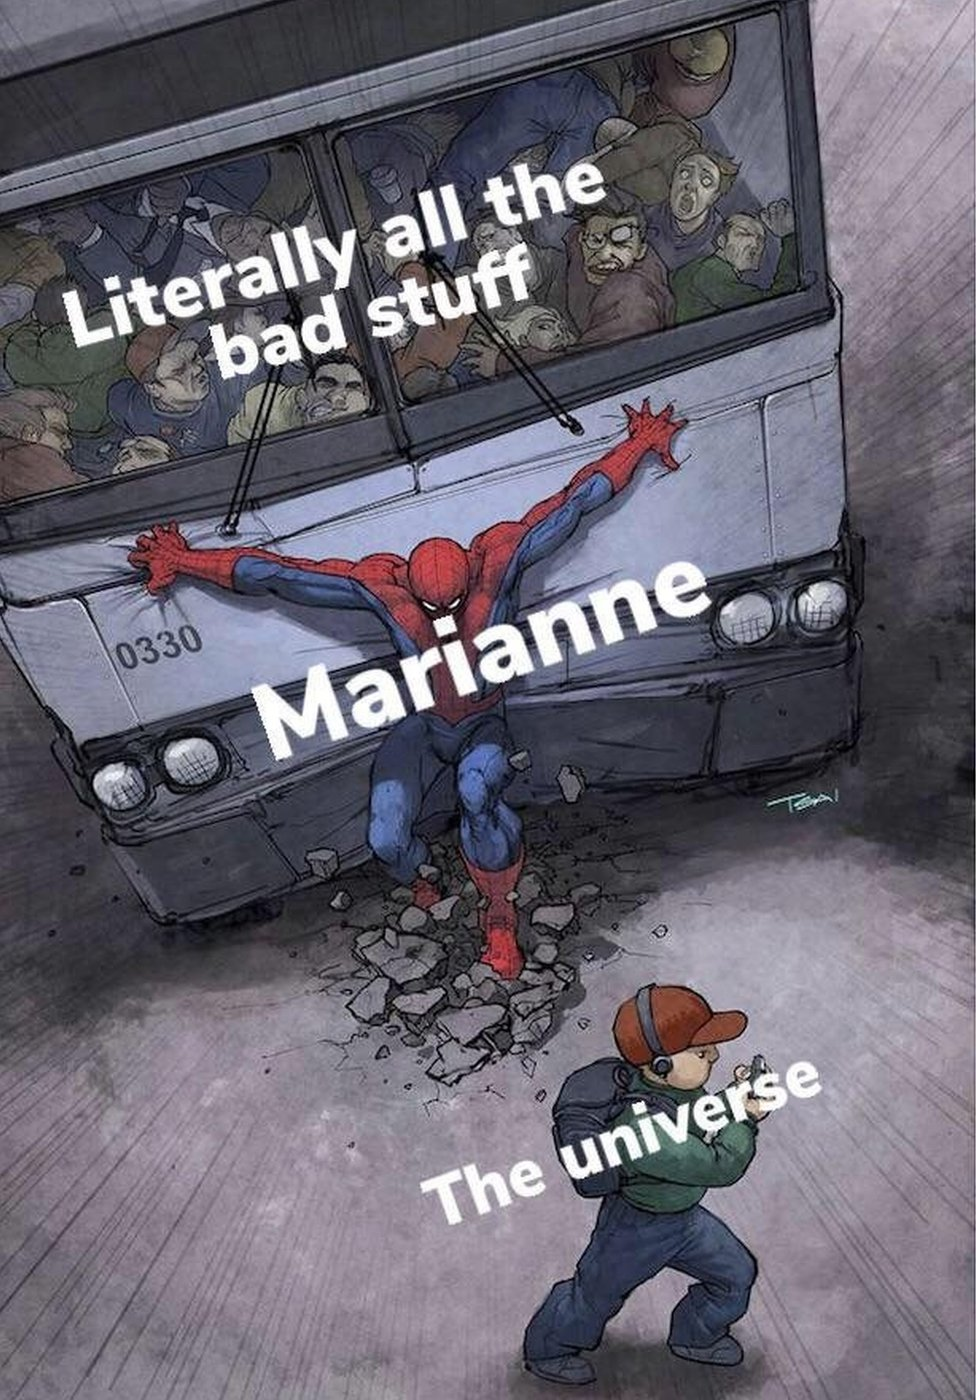 A meme based on comic book hero Spider-Man. Marianne Williamson is Spider-Man, holding back a bus labelled 'literally all the bad stuff' from hitting a child labelled 'the universe'